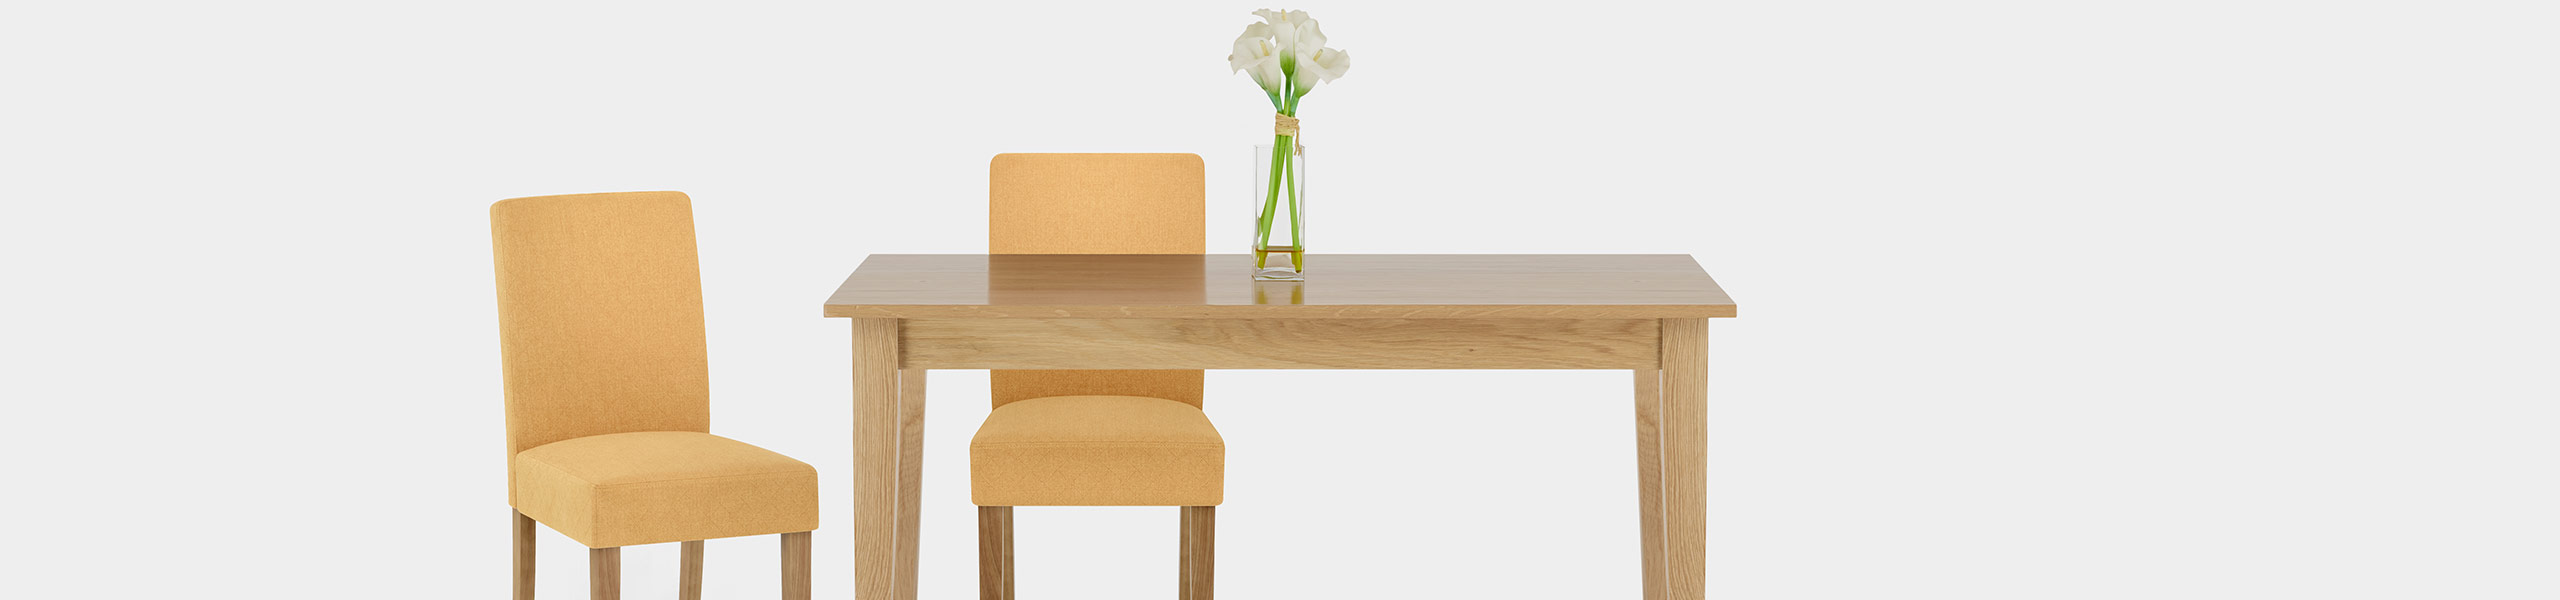 Austin Dining Chair Mustard Video Banner